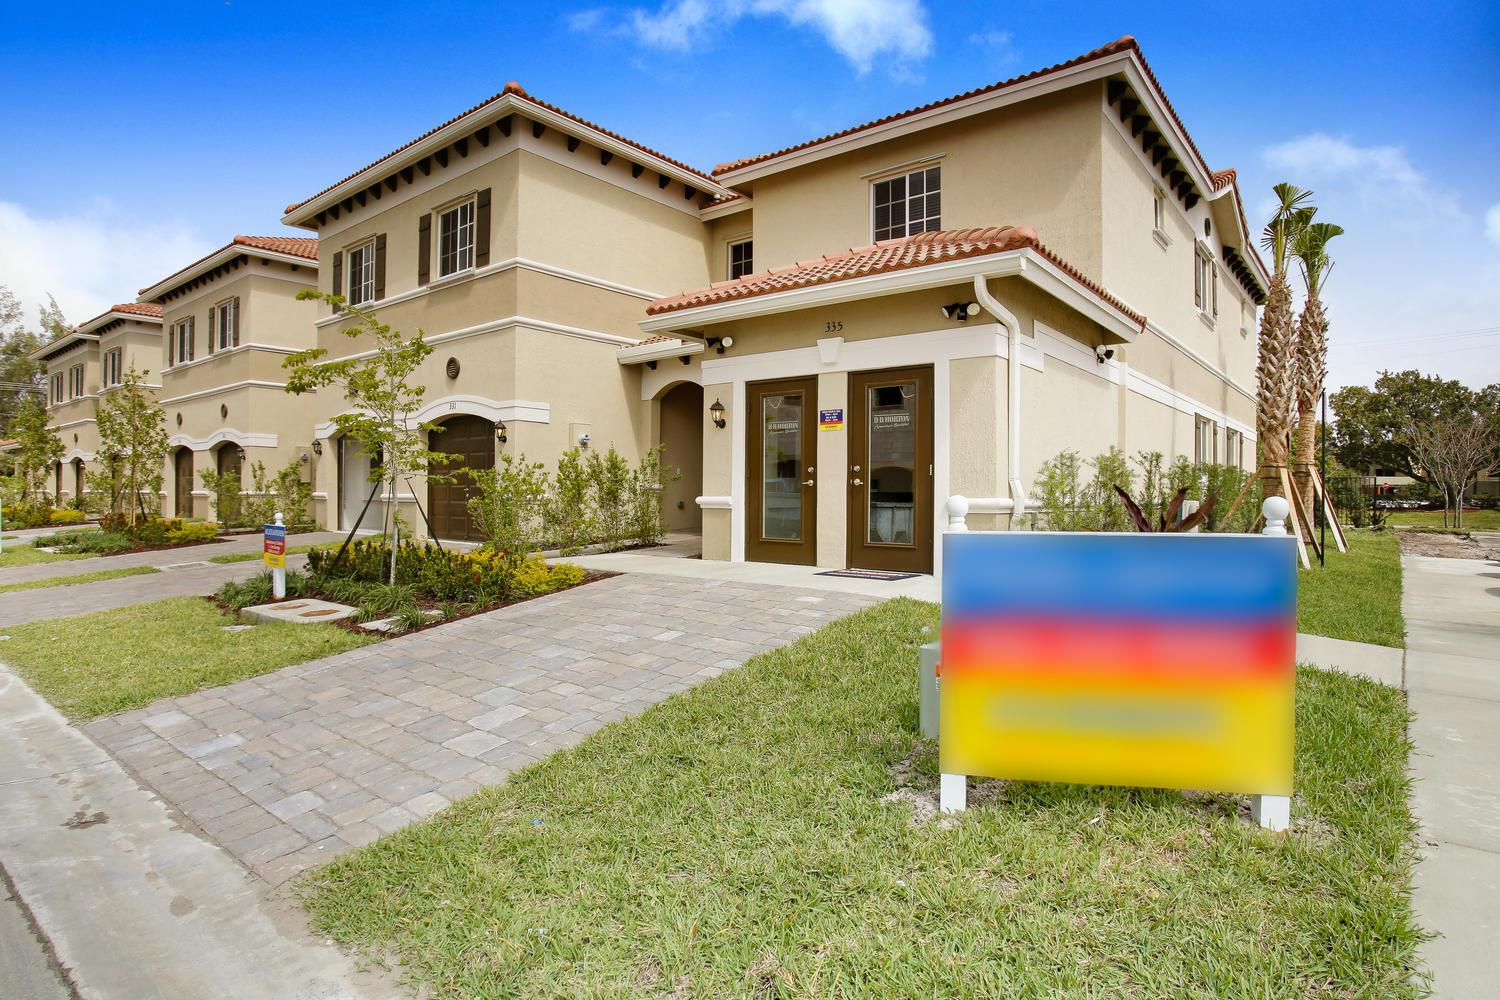 Multi Family for Sale at Crestbrooke 342 Ne 47 Place Deerfield Beach, Florida 33064 United States